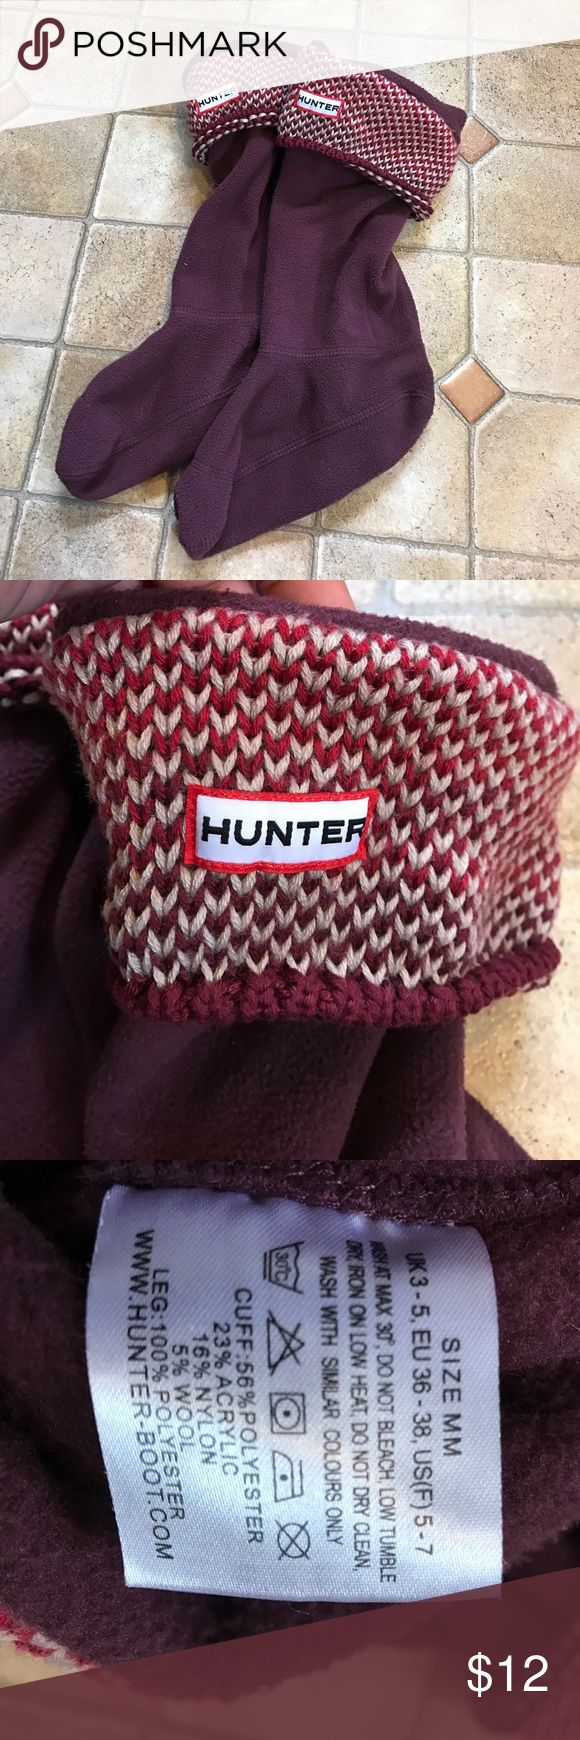 Women's HUNTER fleece boot liner / socks medium Women's hunter boot liners size medium (fits shoe sizes 5-7). Maroon color with knit tops. Excellent used condition- no rips/stains etc. Hunter Other